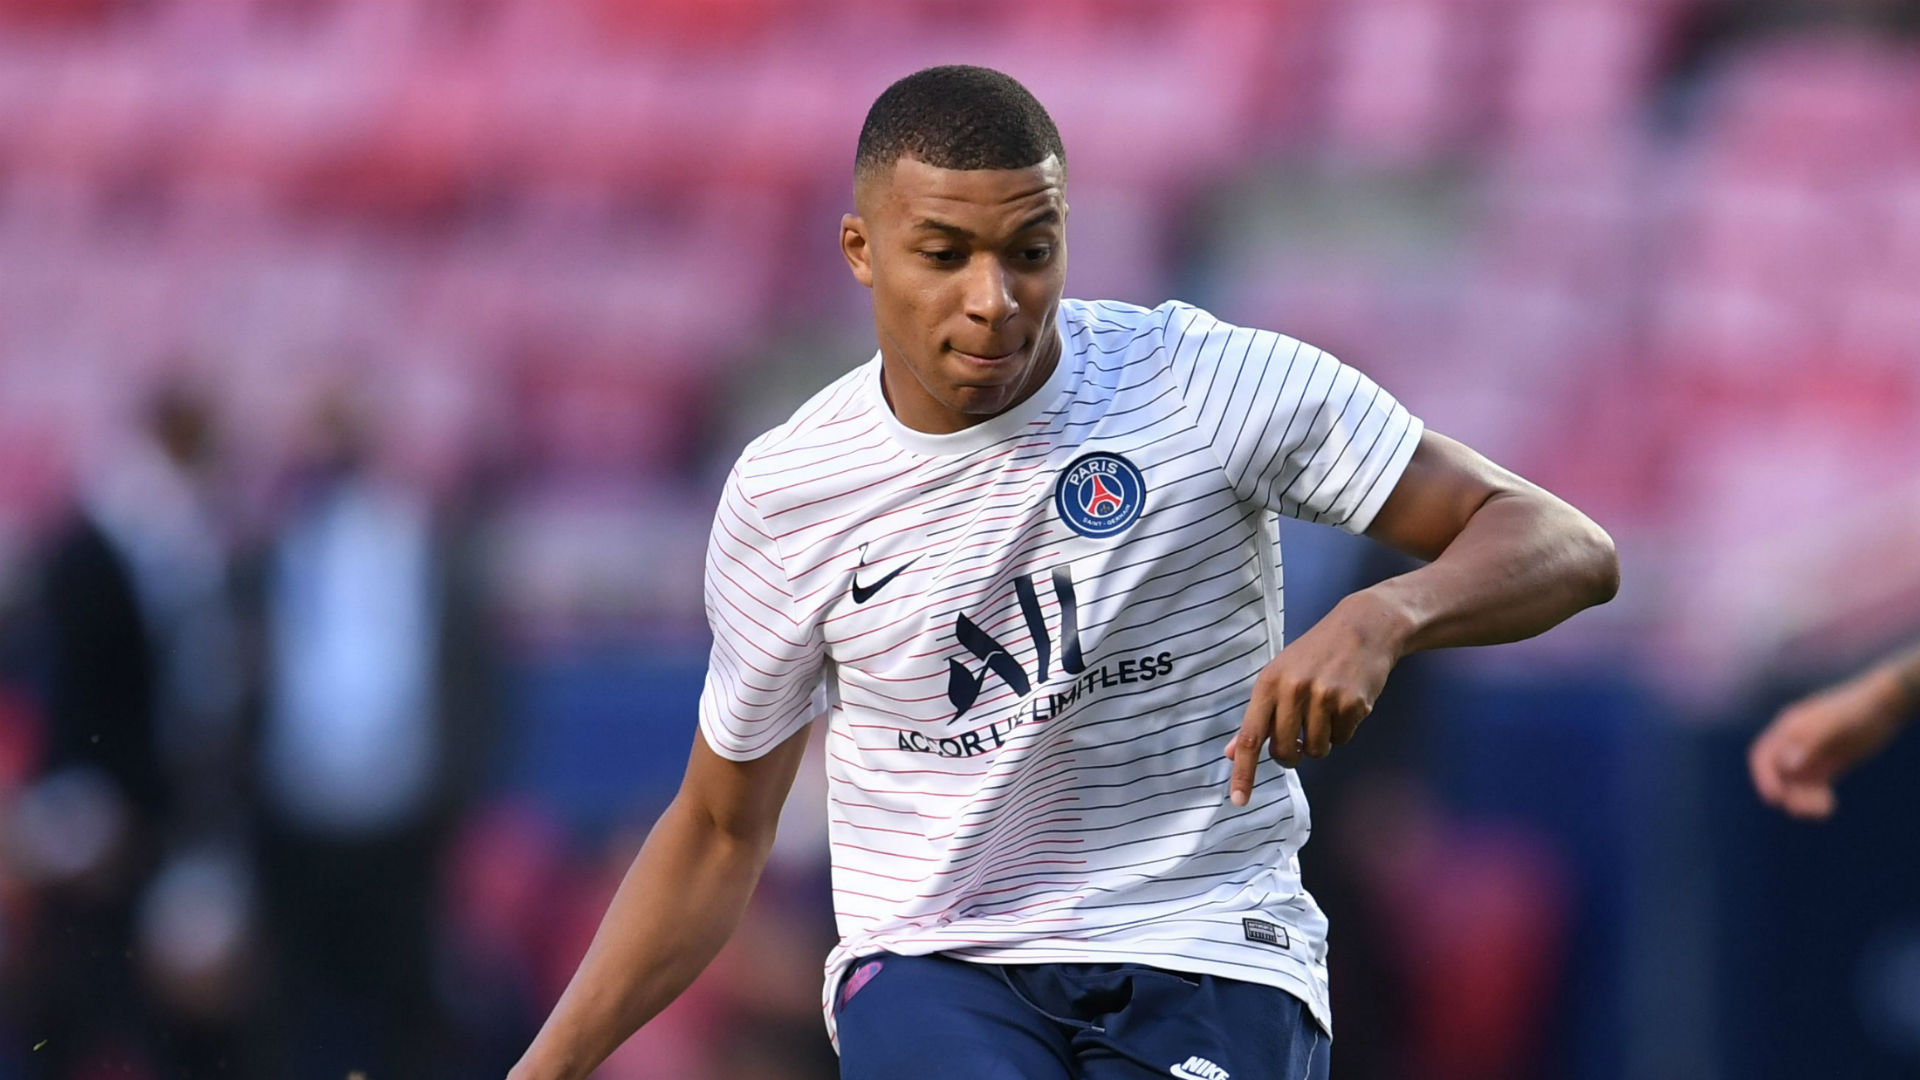 Mbappe continues individual training ahead of PSG's Nice clash